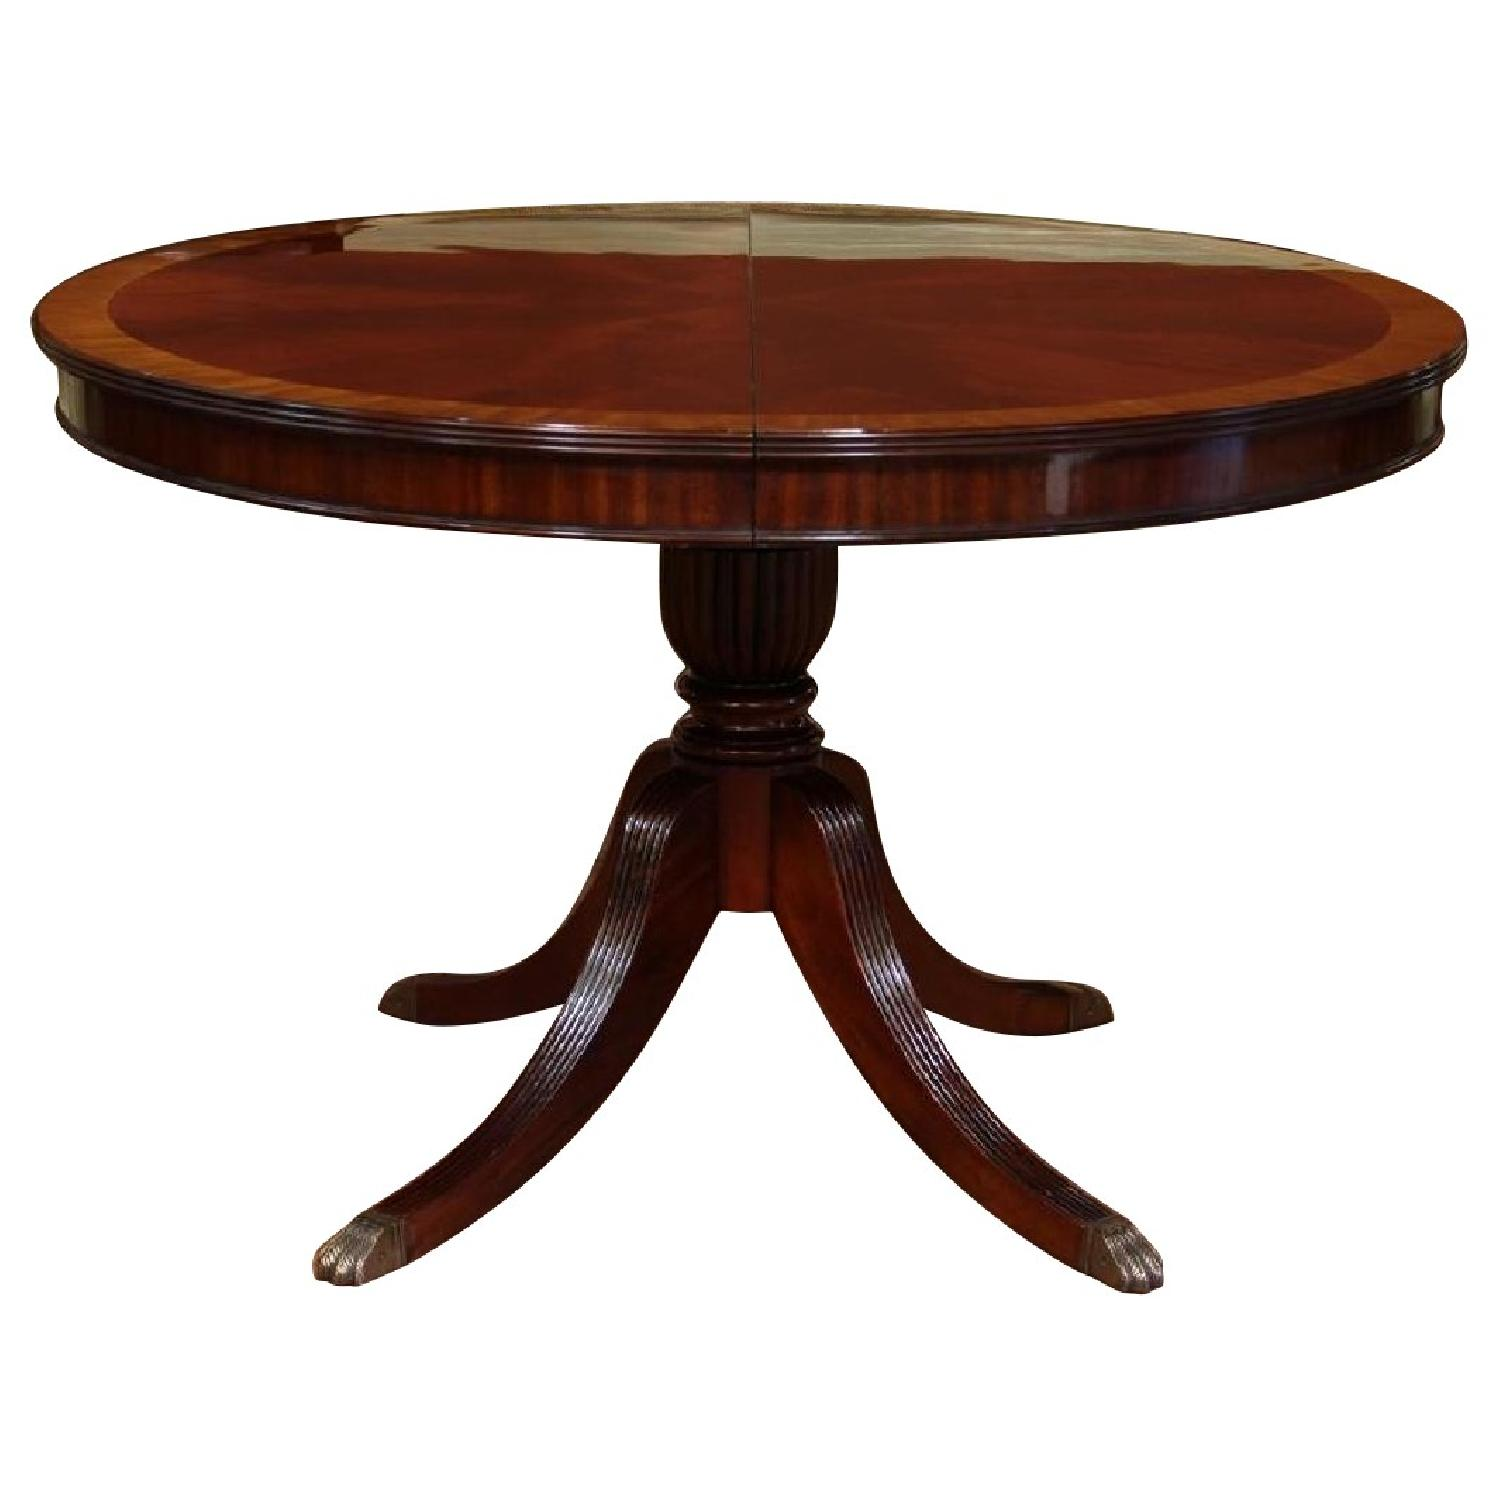 Thomasville Mahogany Coll Pedestal Dining Table - image-0